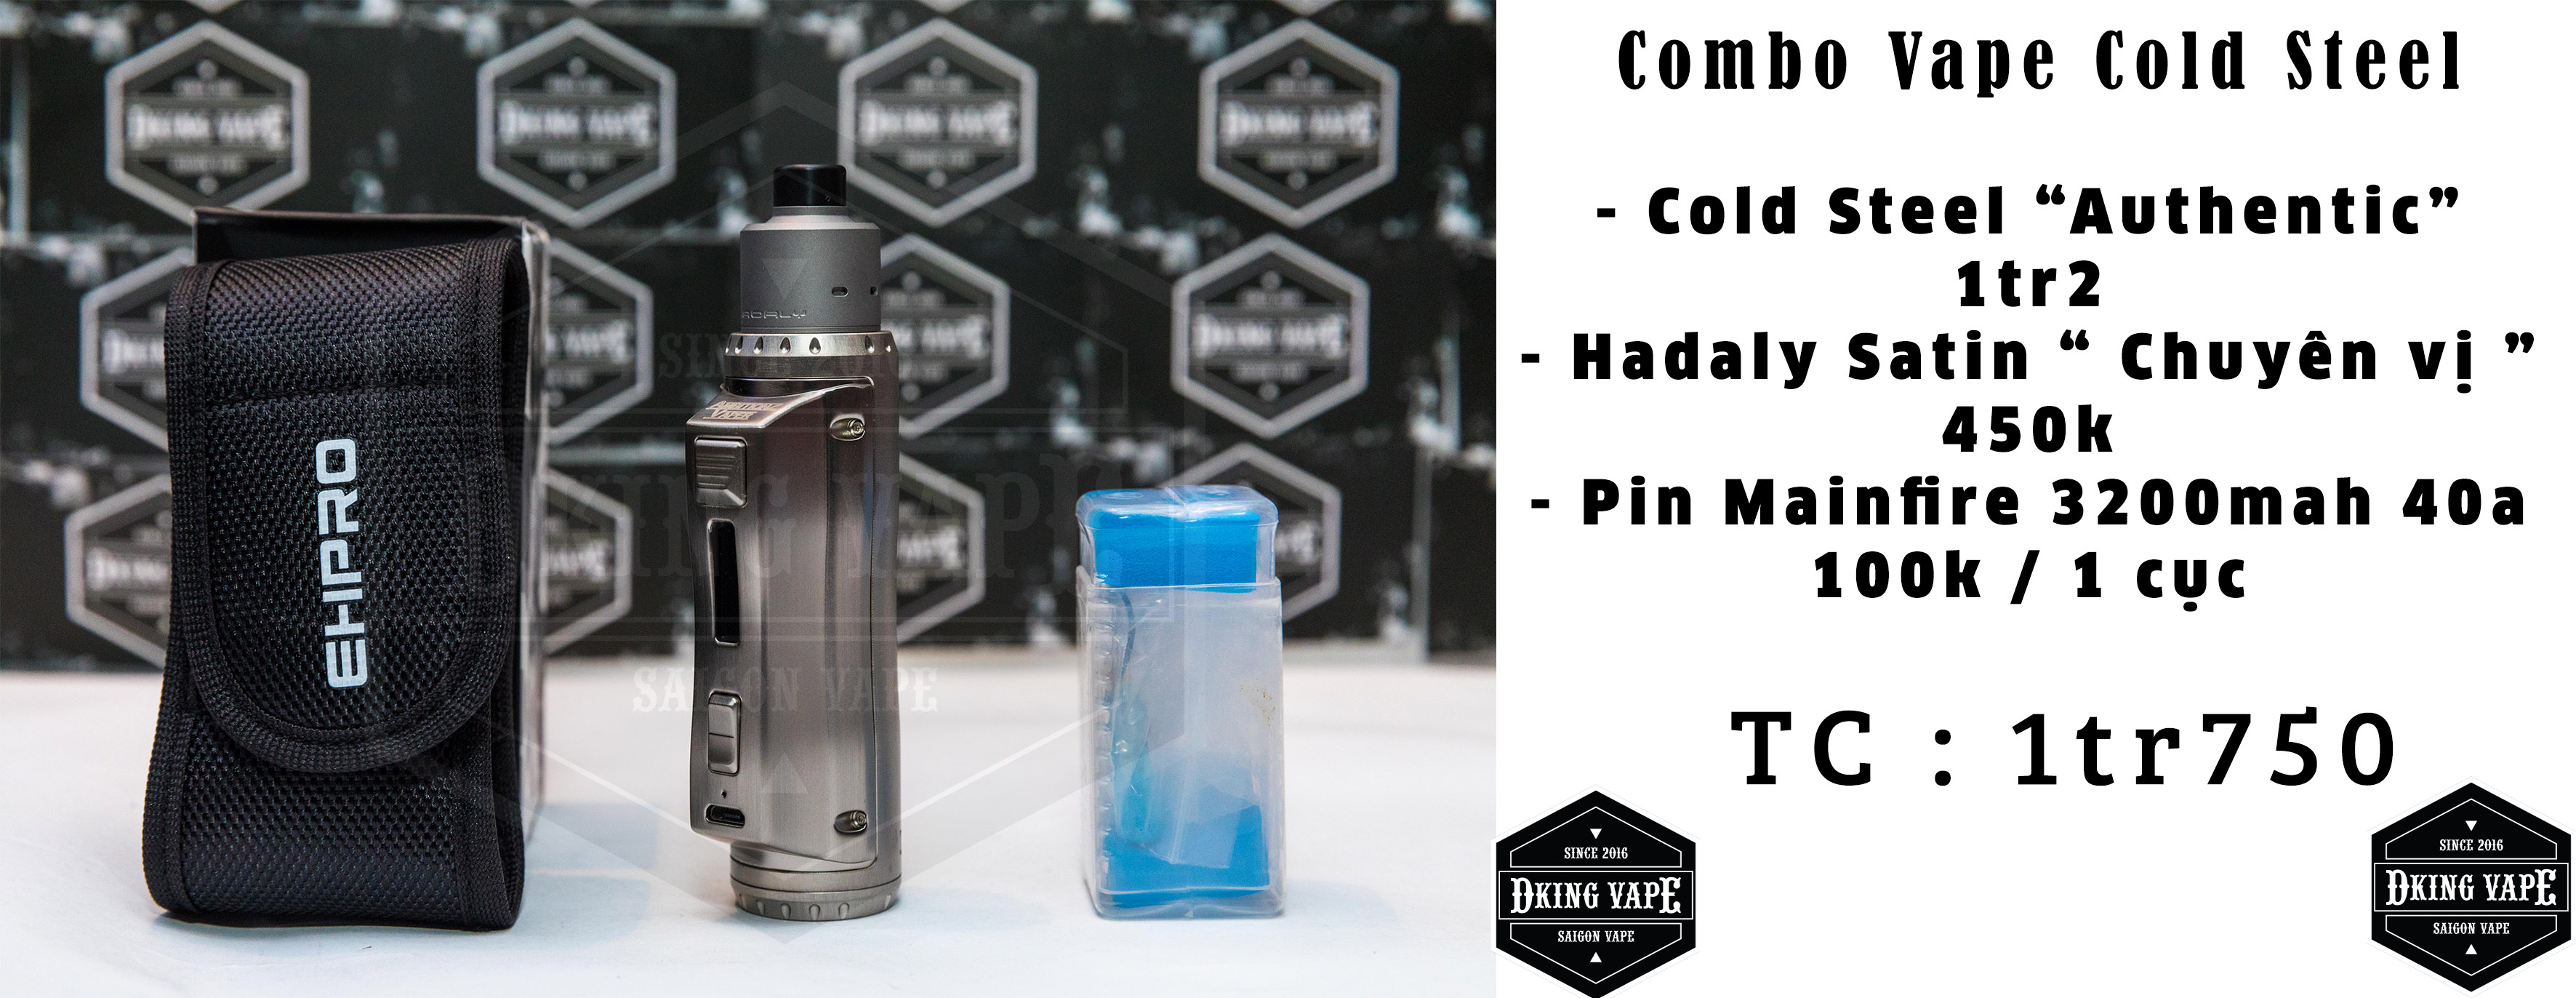 Combo Cold Steel 100w